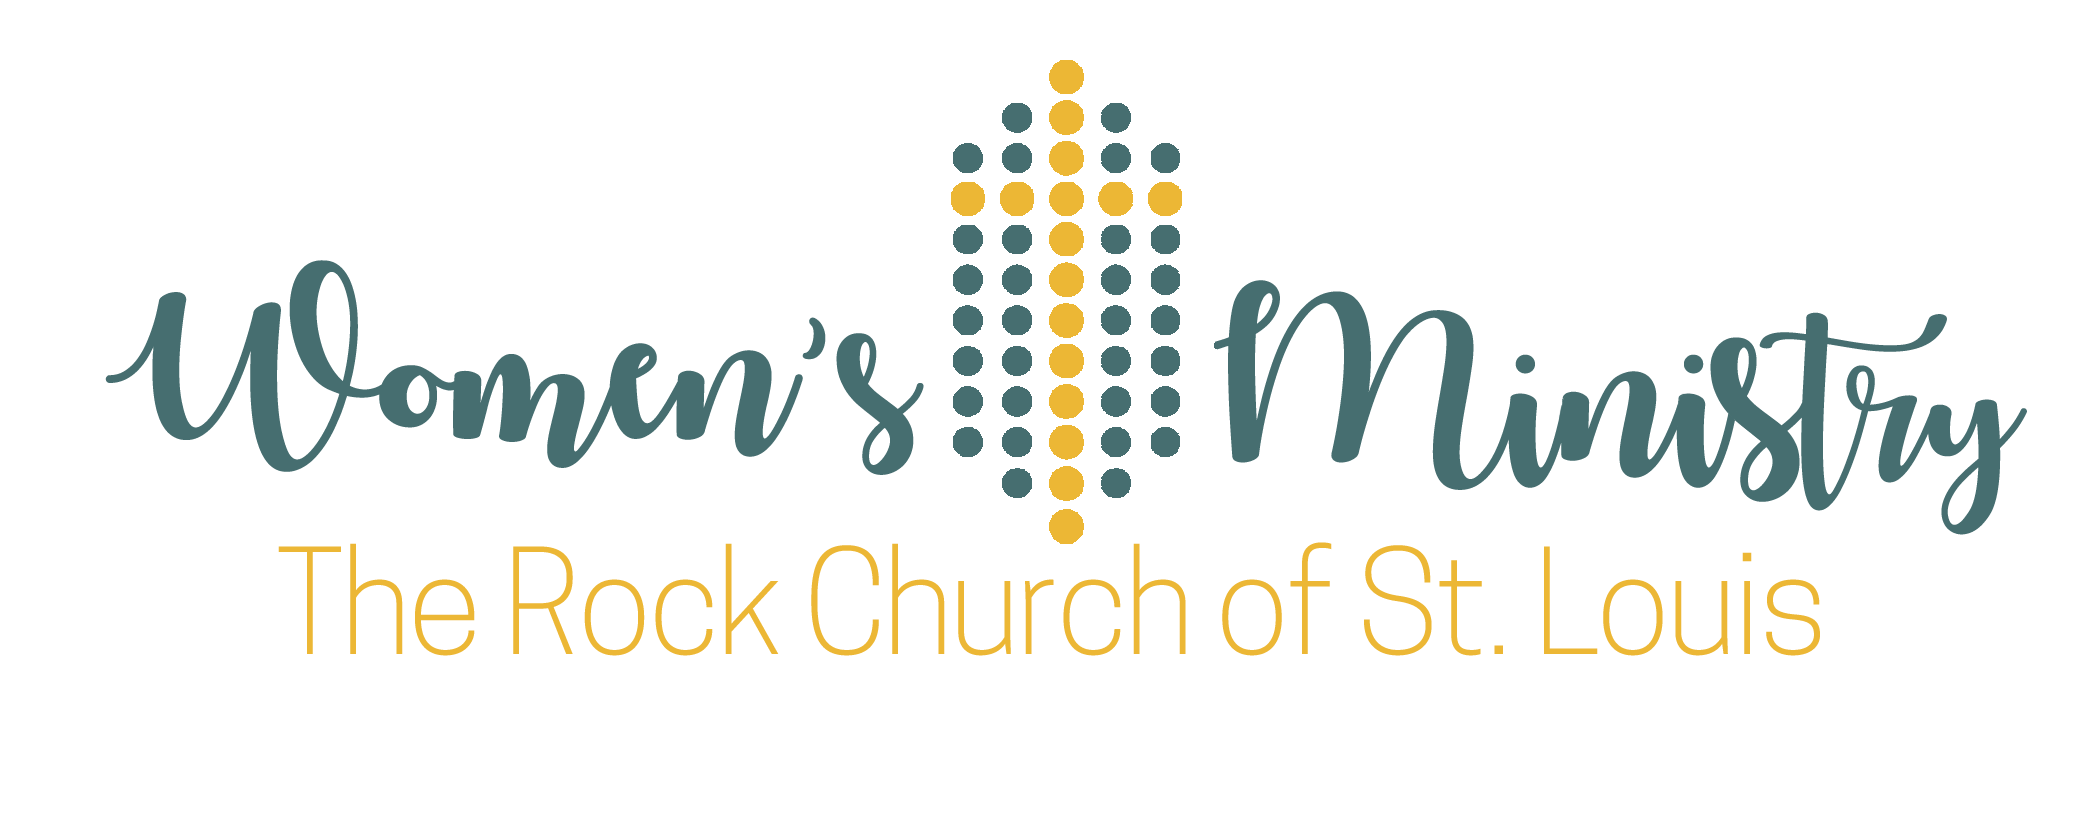 Women's Ministry Logo 1 fall colors.png